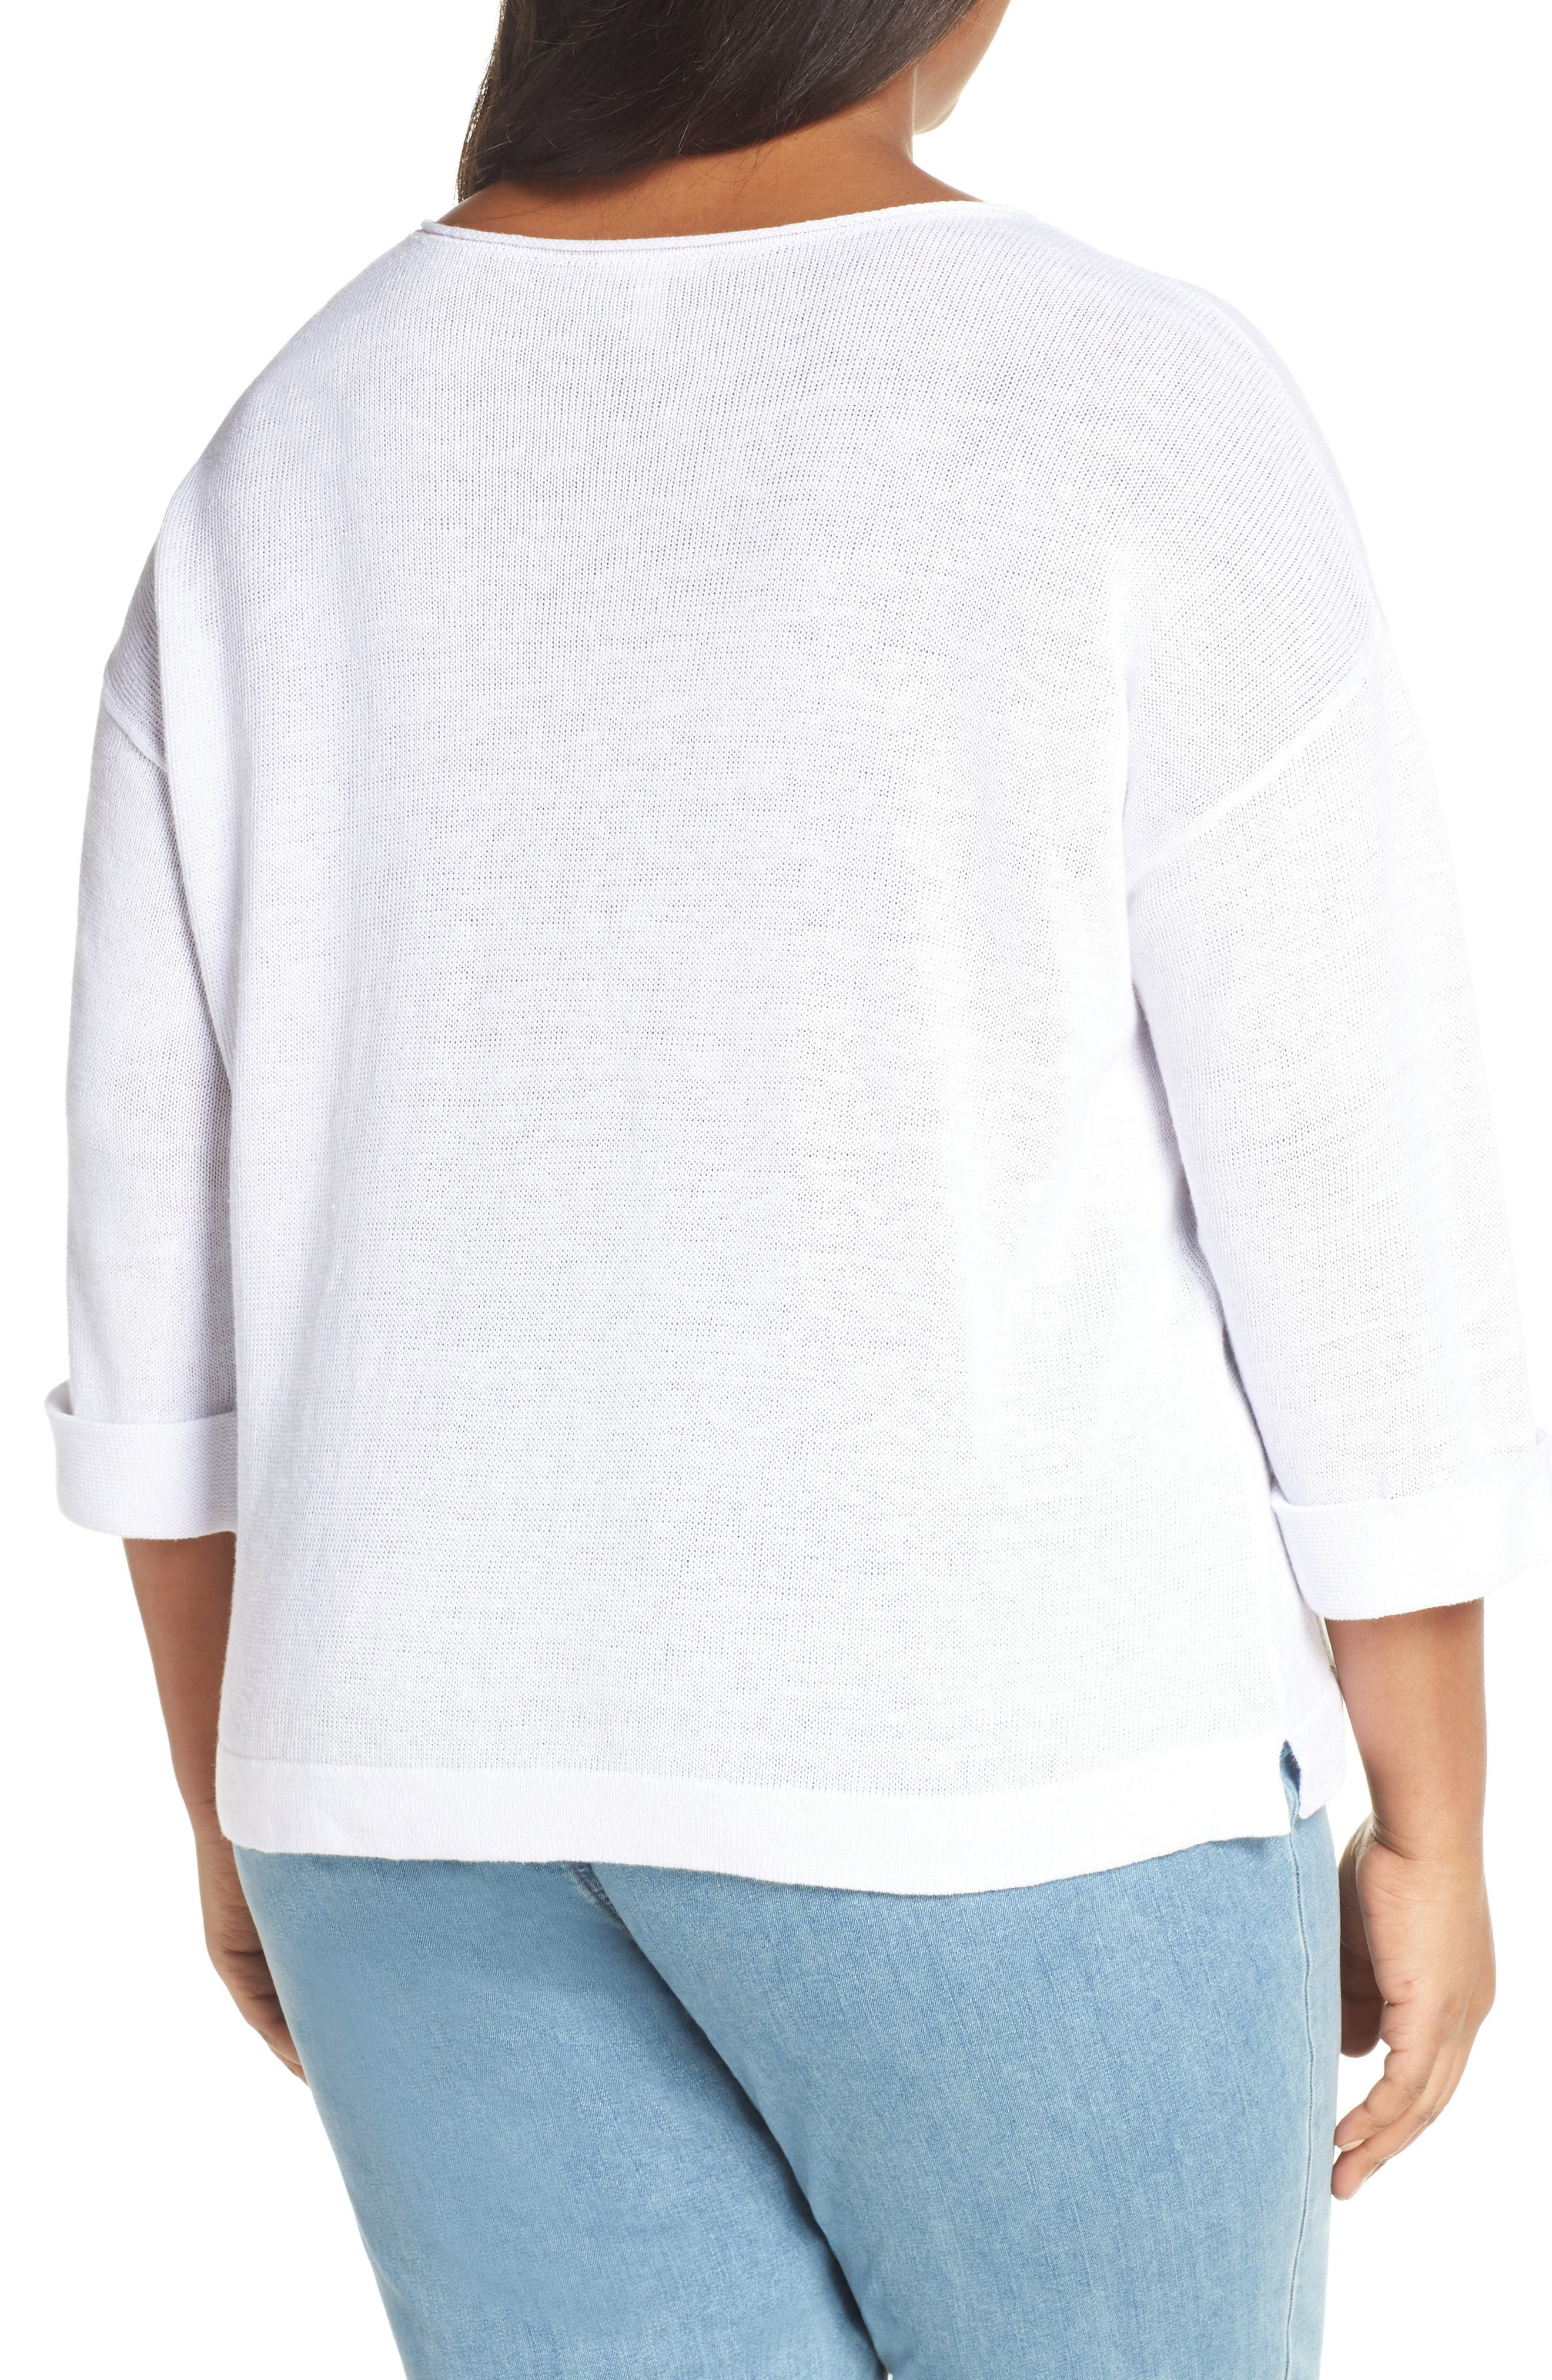 EILEEN FISHER, Round Neck Top, Alternate thumbnail 2, color, WHITE